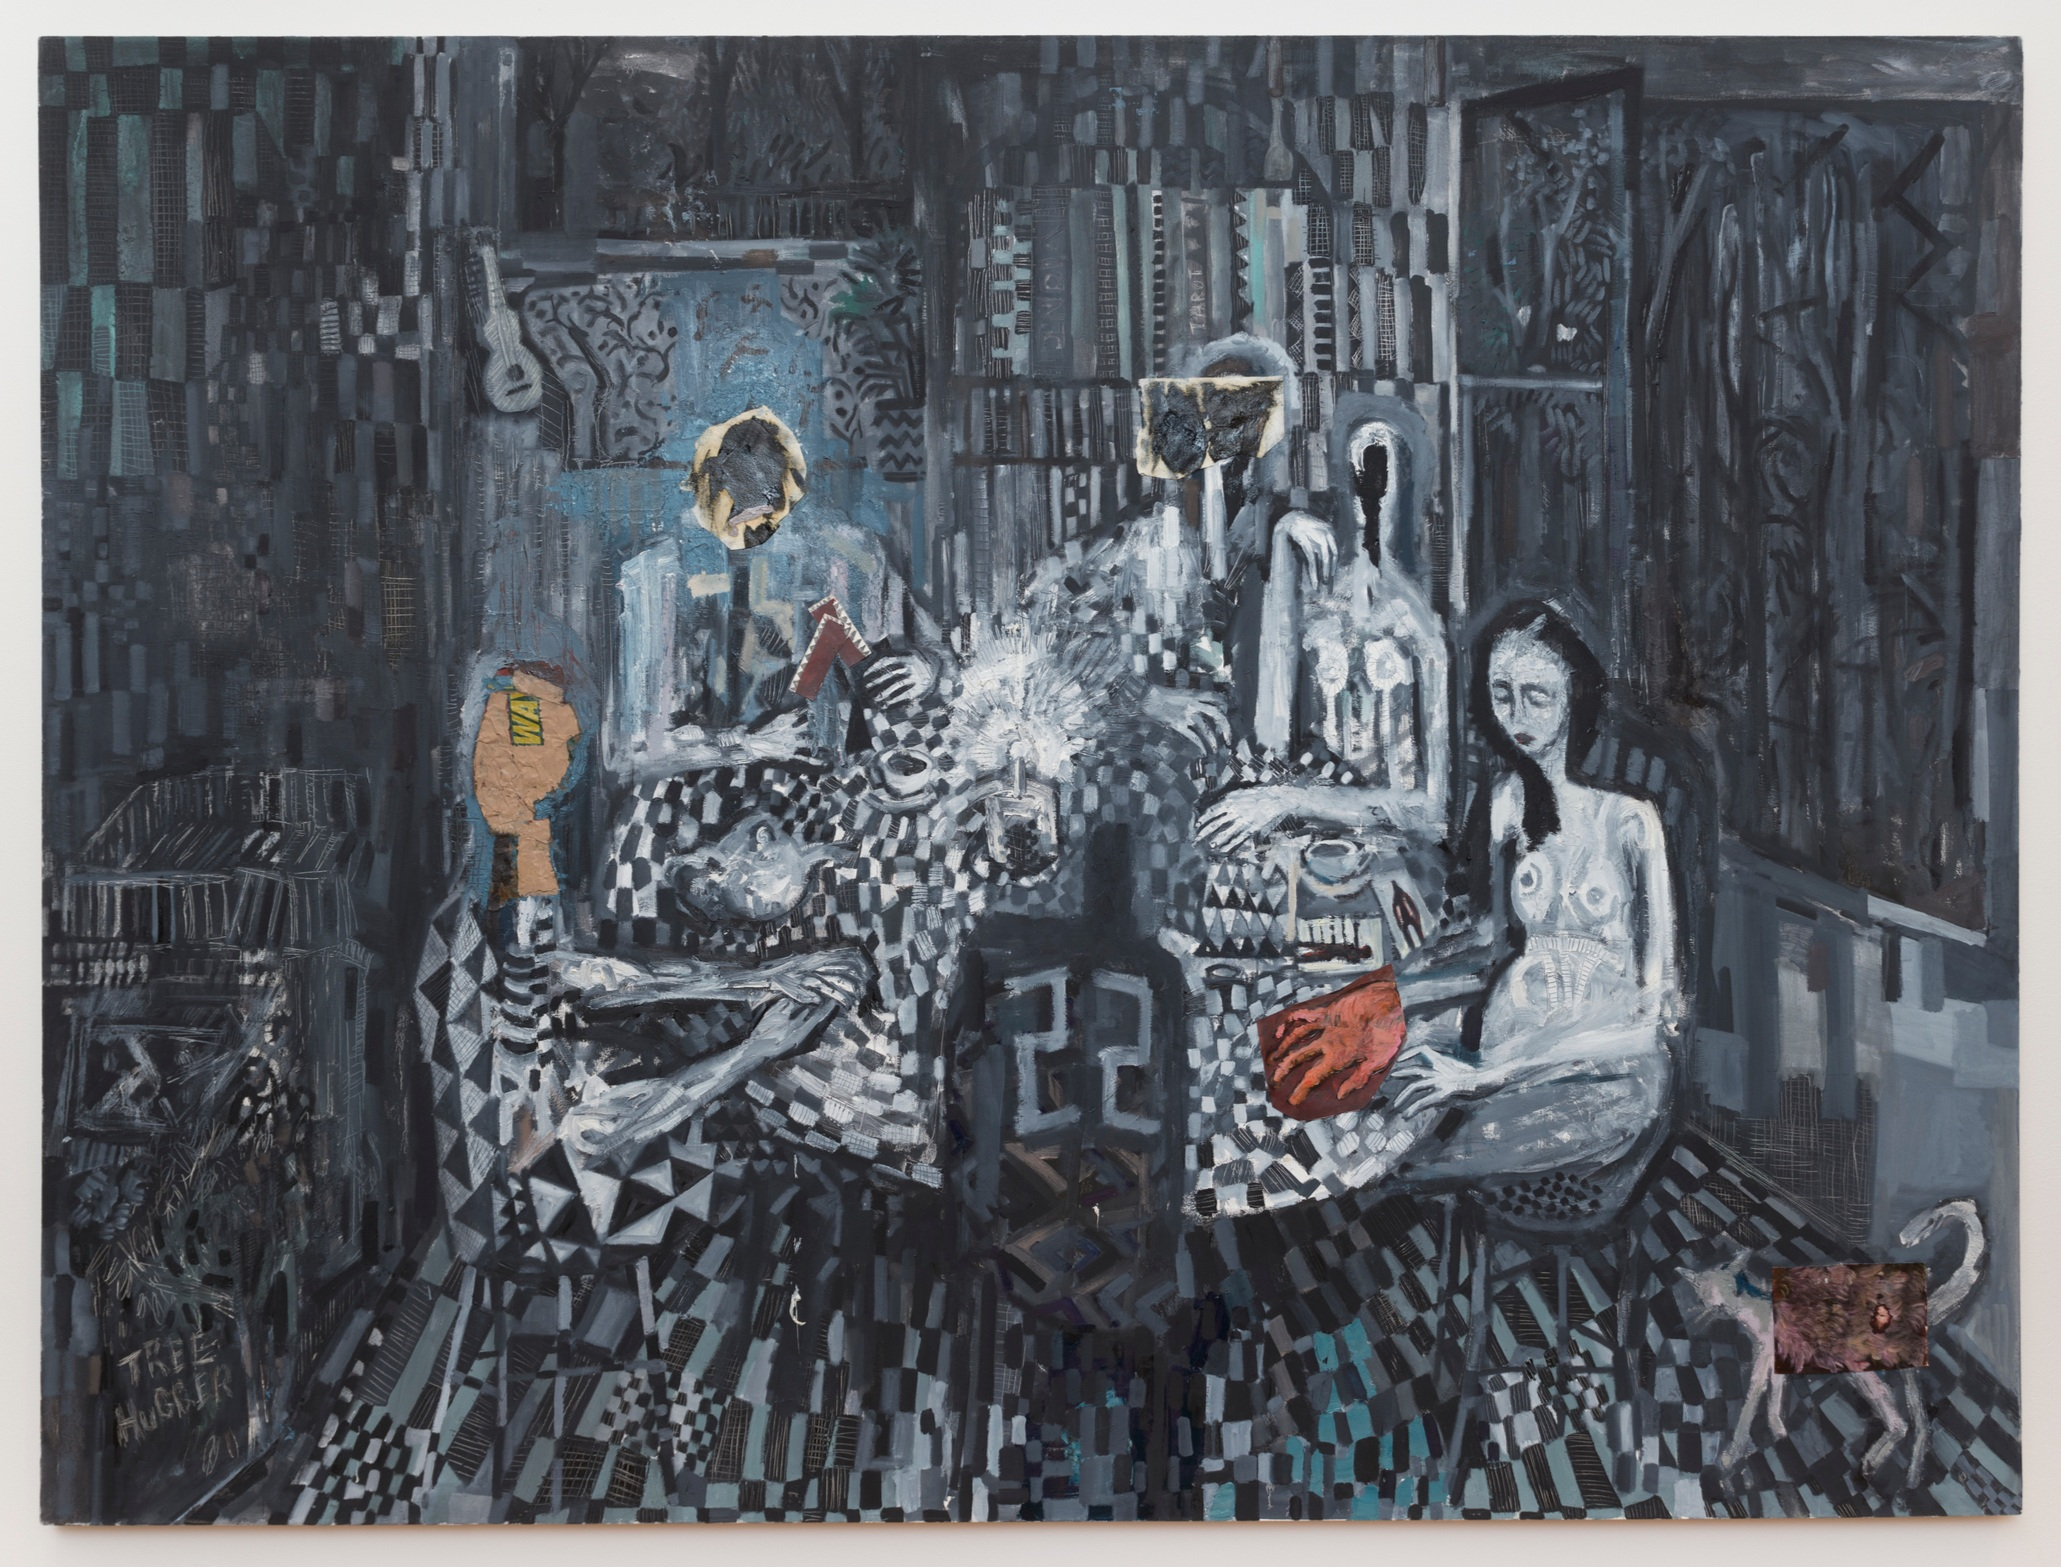 Tarot , 2012, oil and paper on canvas, 72x96 inches